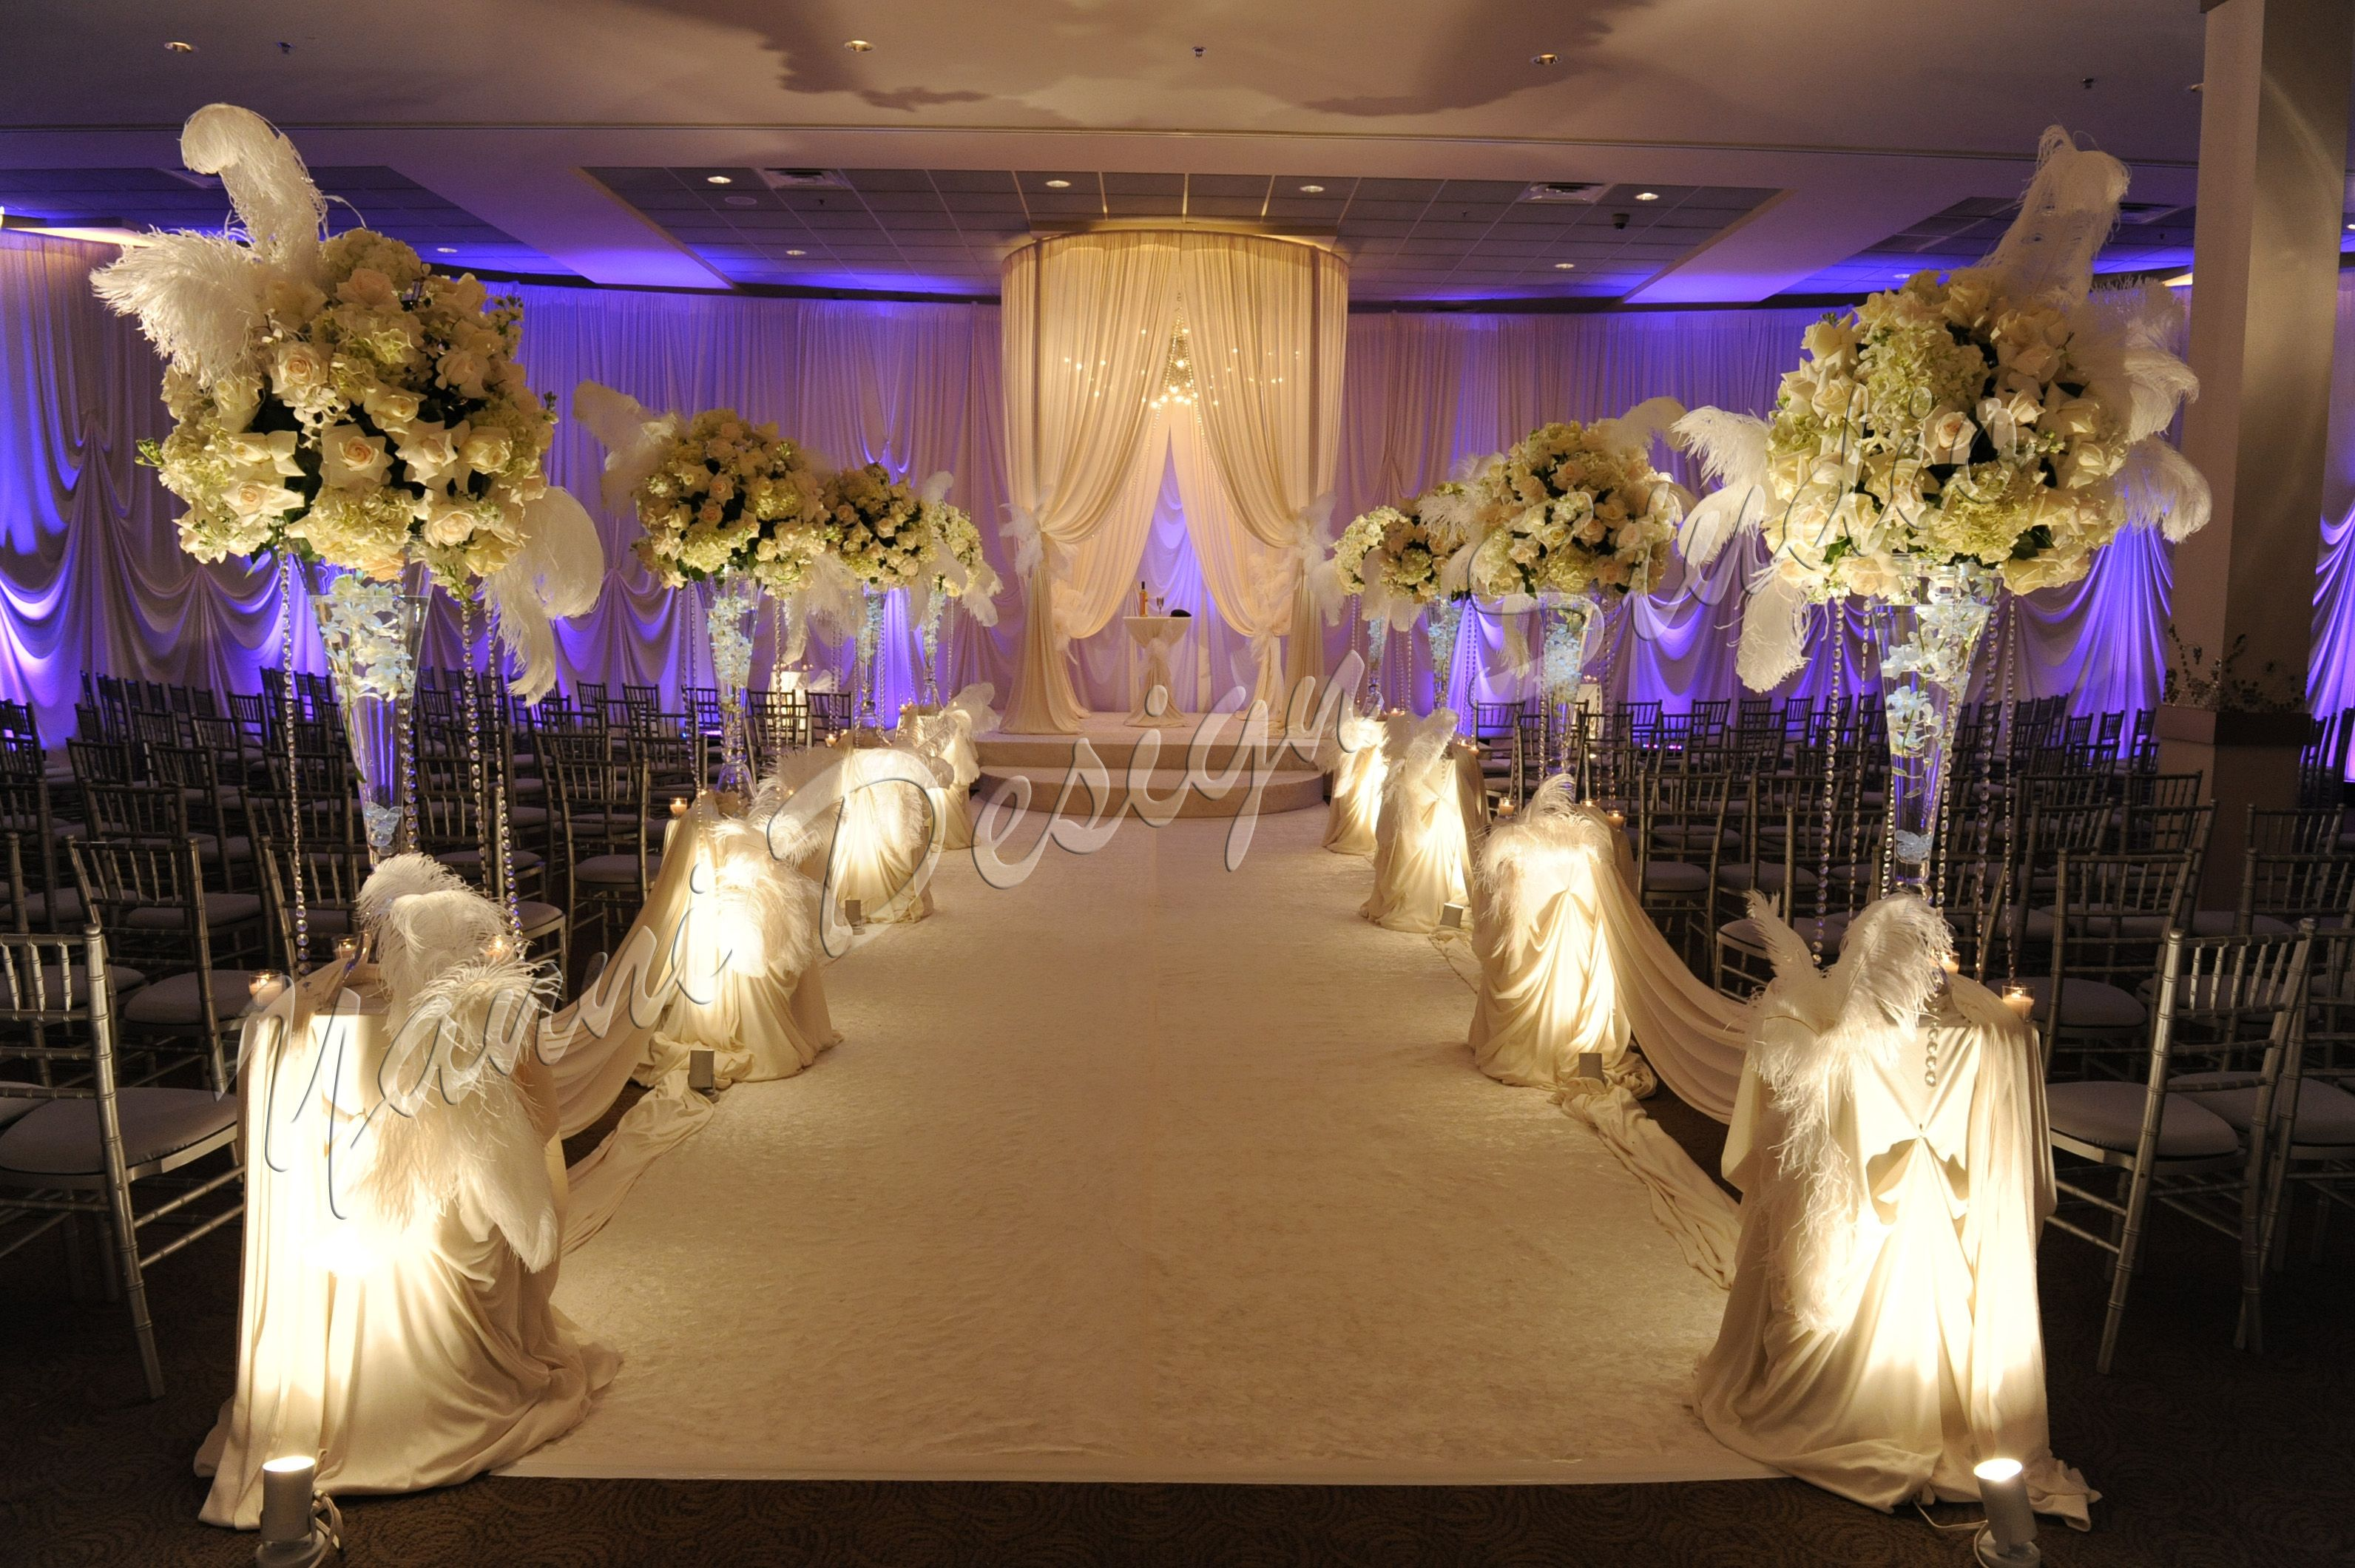 White Floral Arrangements Decorated With Feather Accents